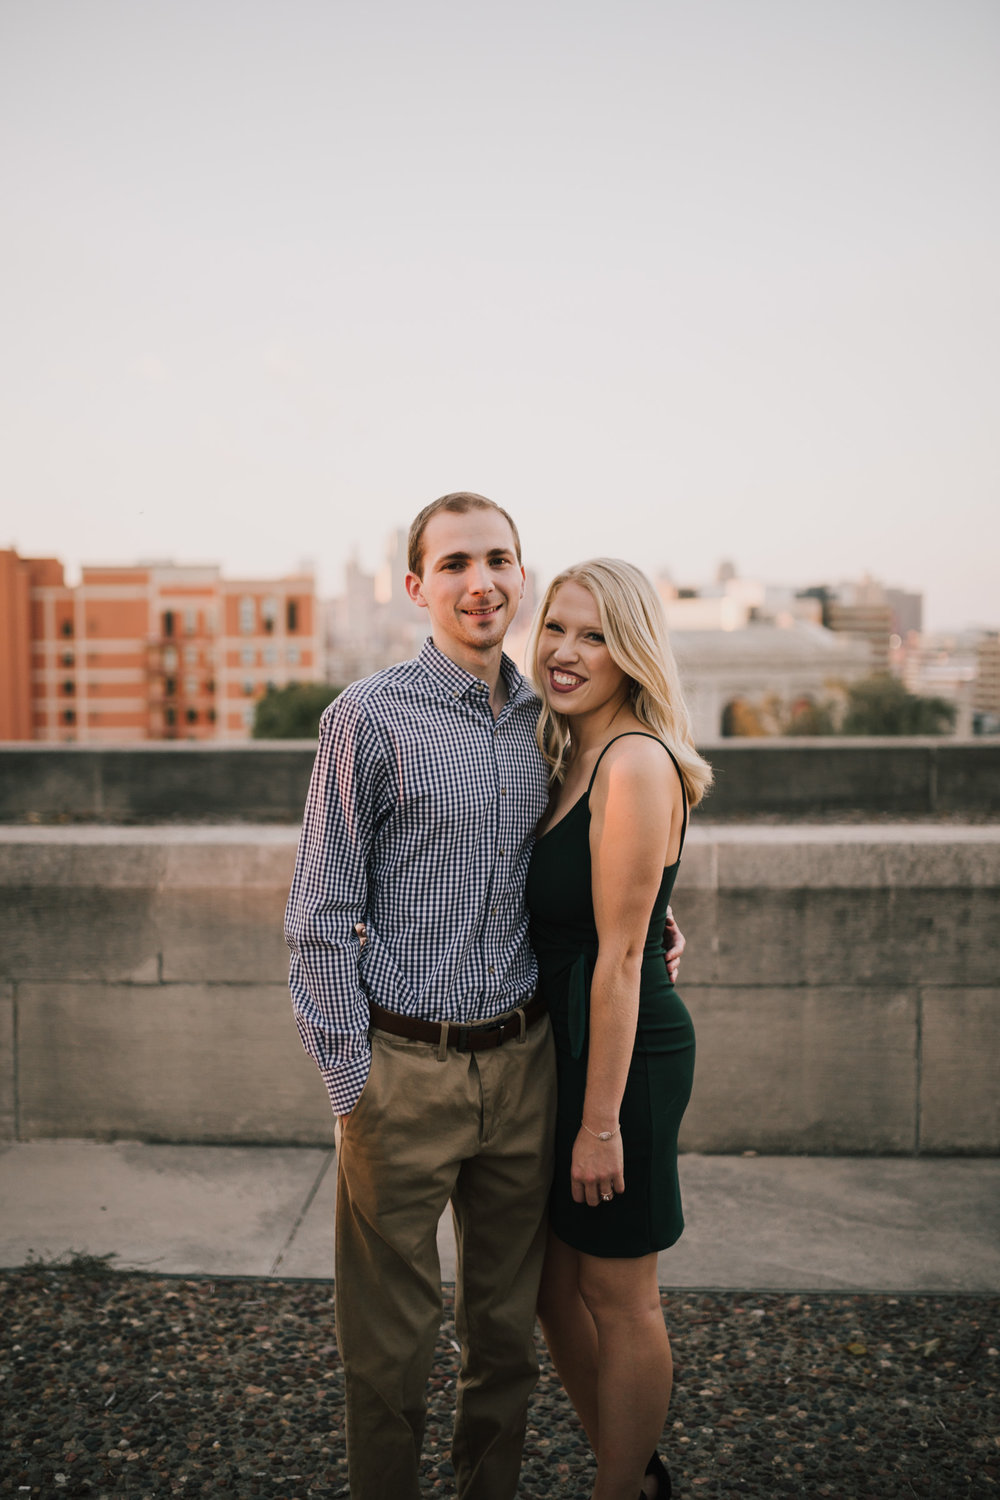 alyssa barletter photography nelson atkins art museum classic summer engagement session with dog-21.jpg